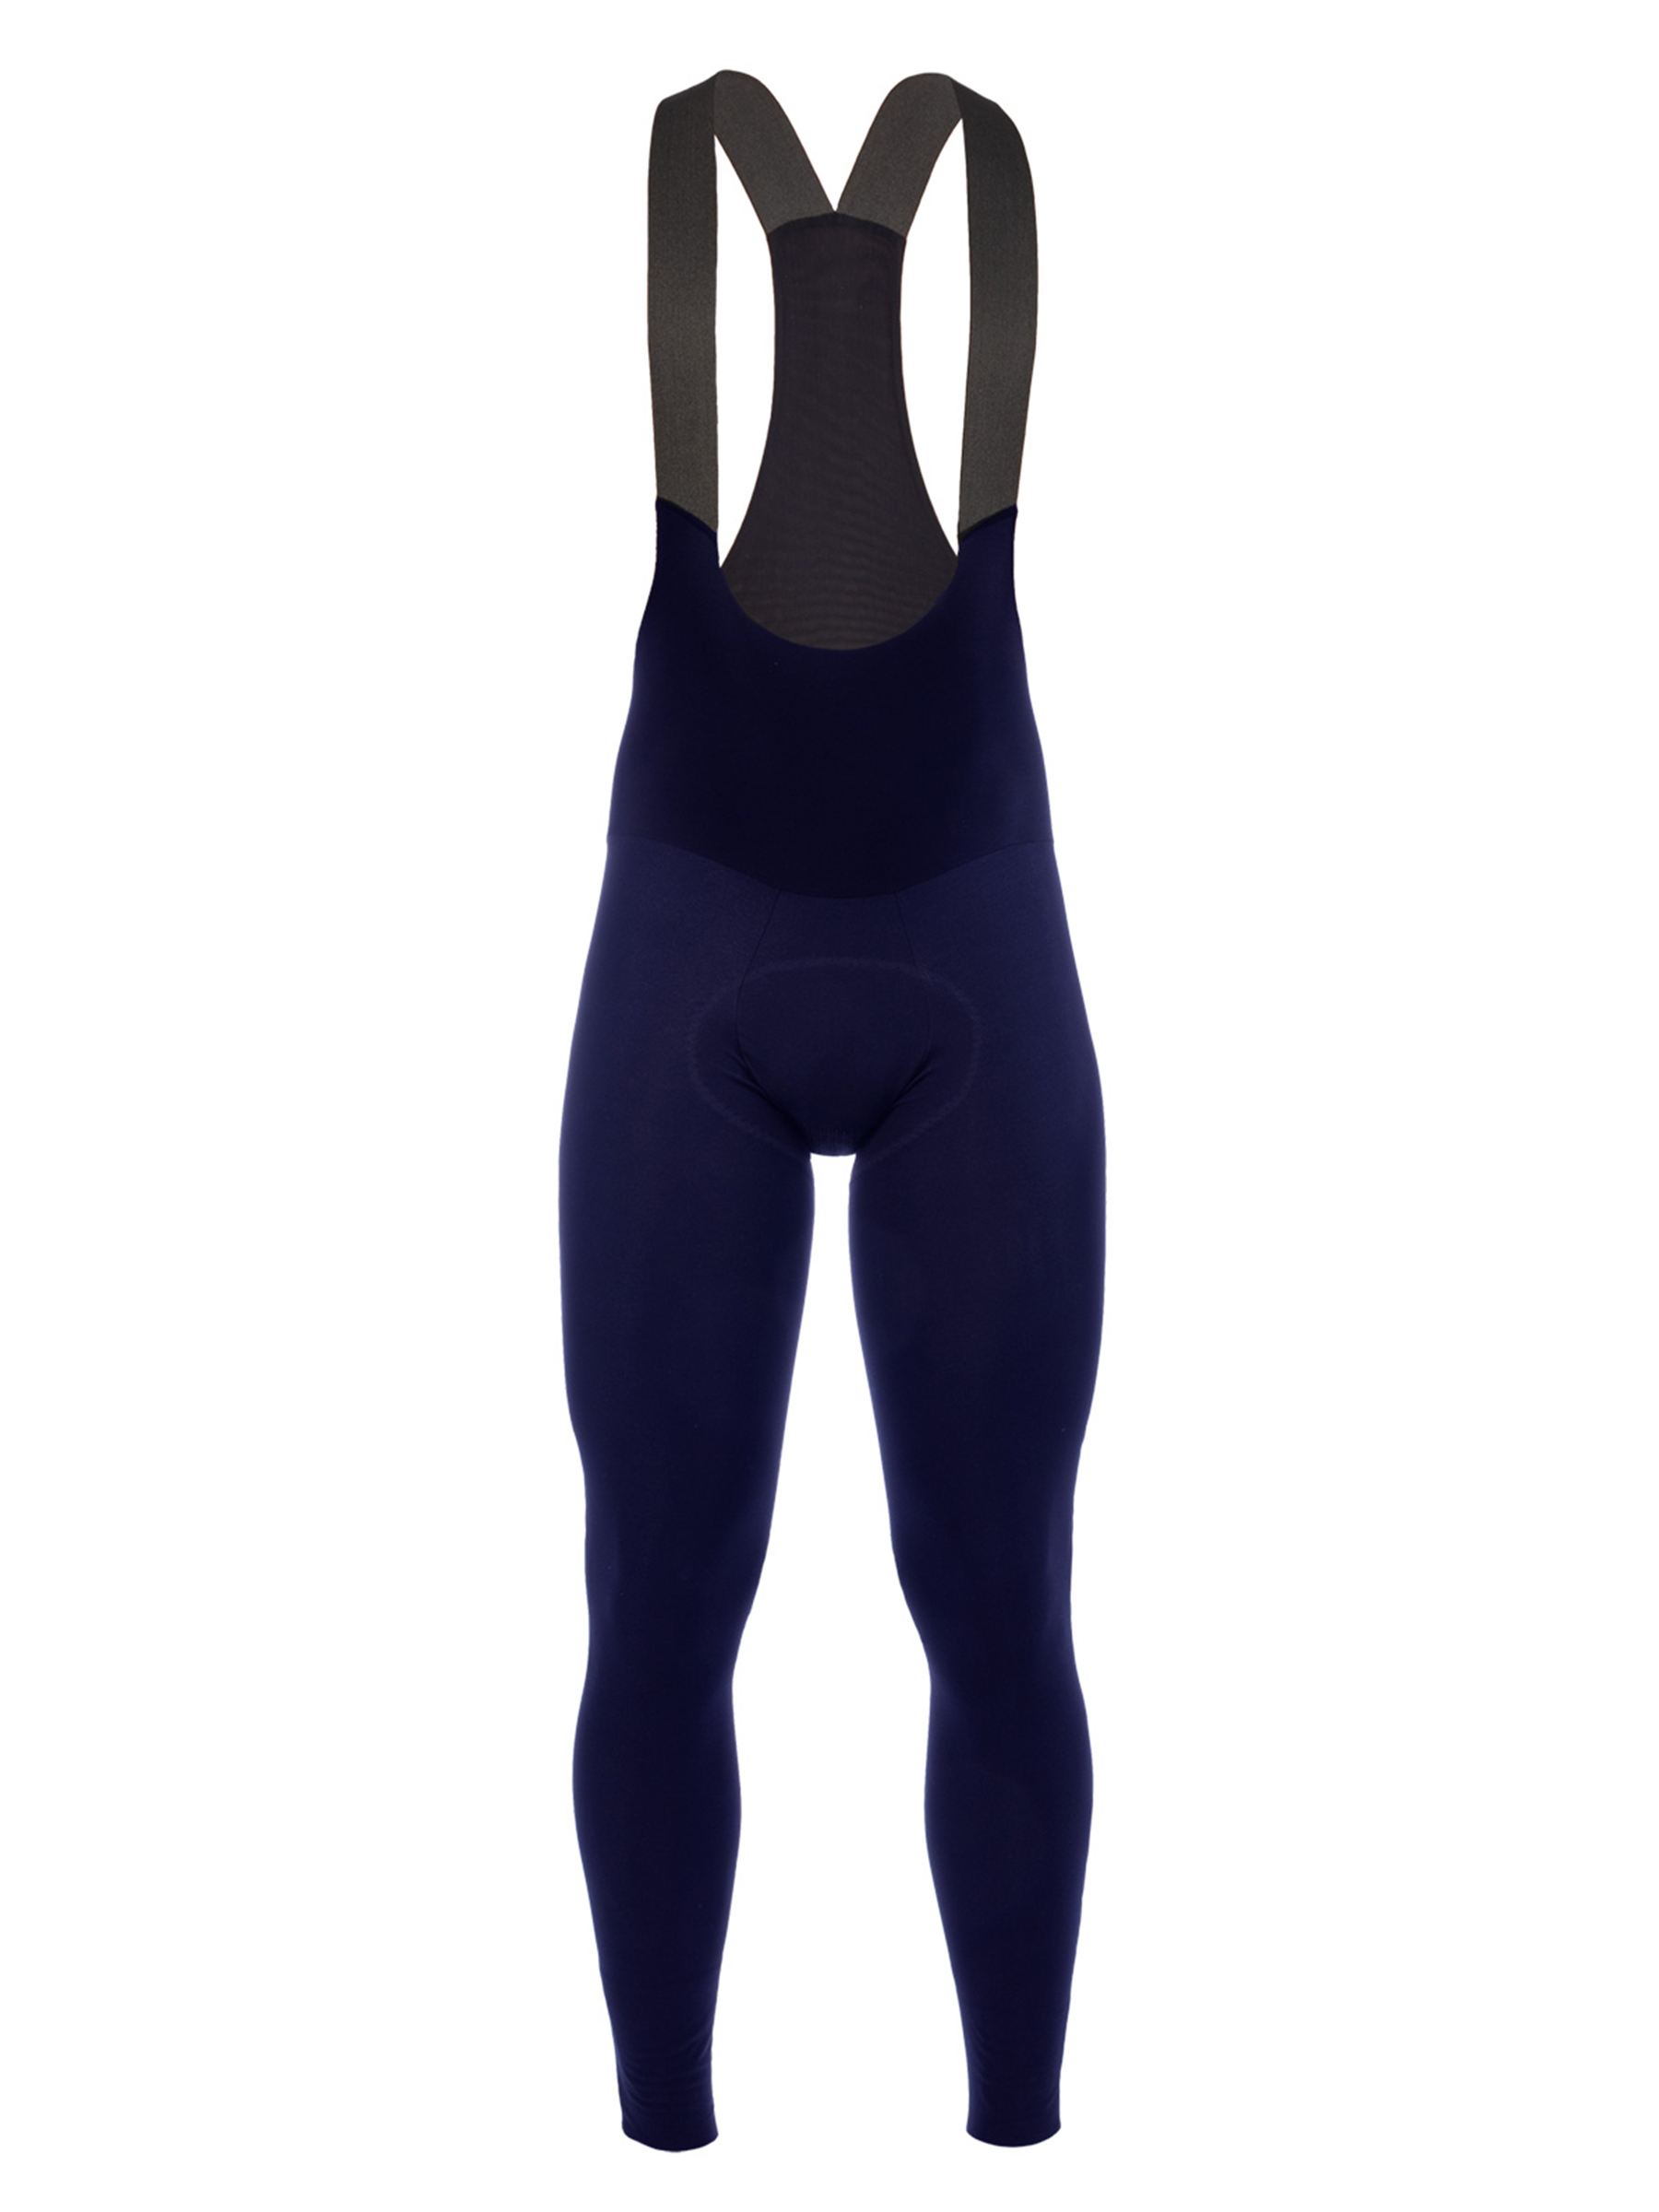 mens cycling tights Long Salopette L1 navy blue Q36.5 - 010X.9